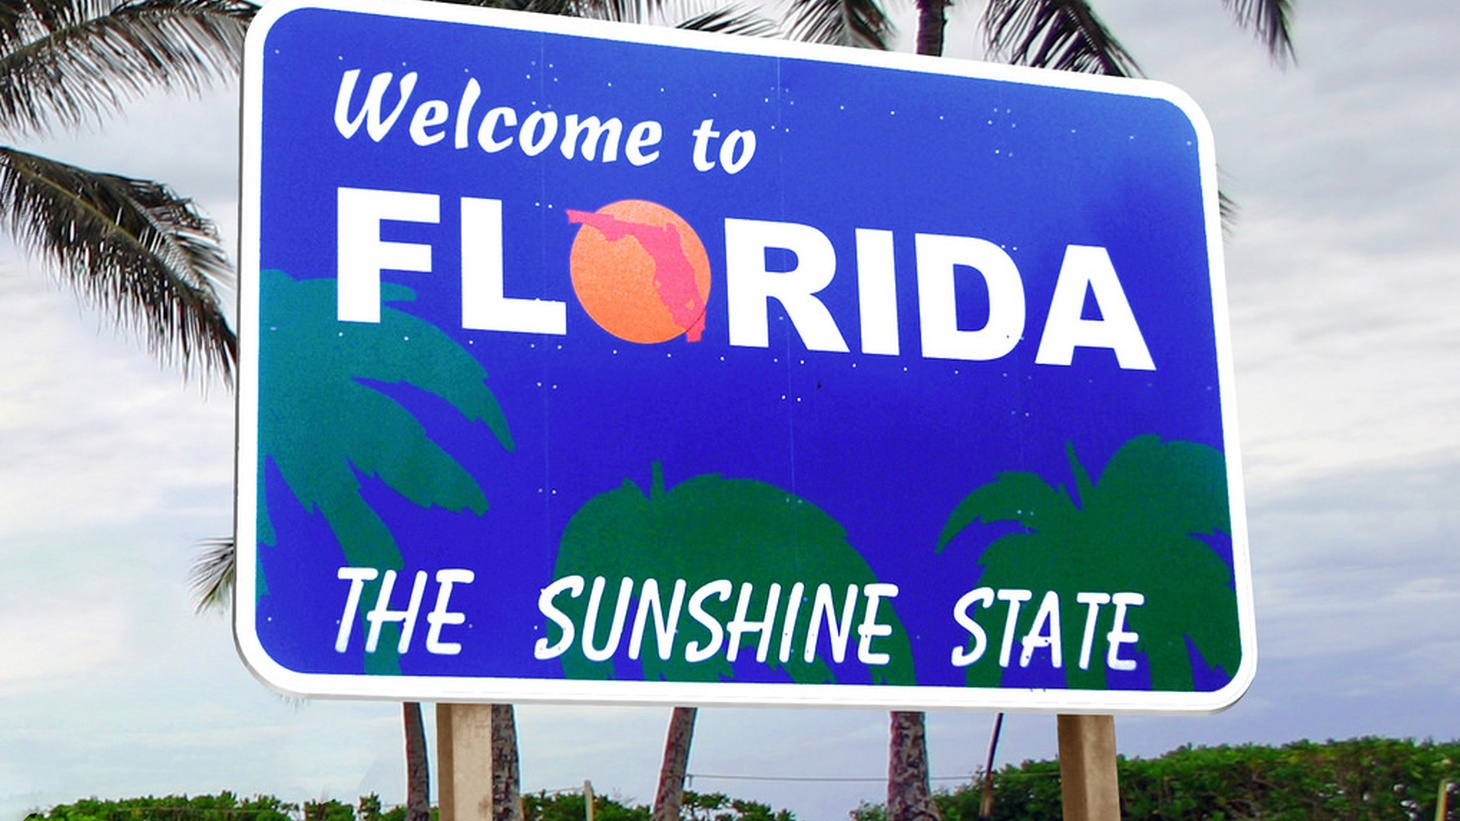 Florida has been a central focus for presidential campaigns ever since it put George W. Bush in the White House with a margin of 537 votes. Donald Trump, Hillary Clinton and their surrogates have been crisscrossing the state in the last few days. Also, researchers have debunked a widely-cited study that says correcting someone with facts reinforces their erroneous belief.